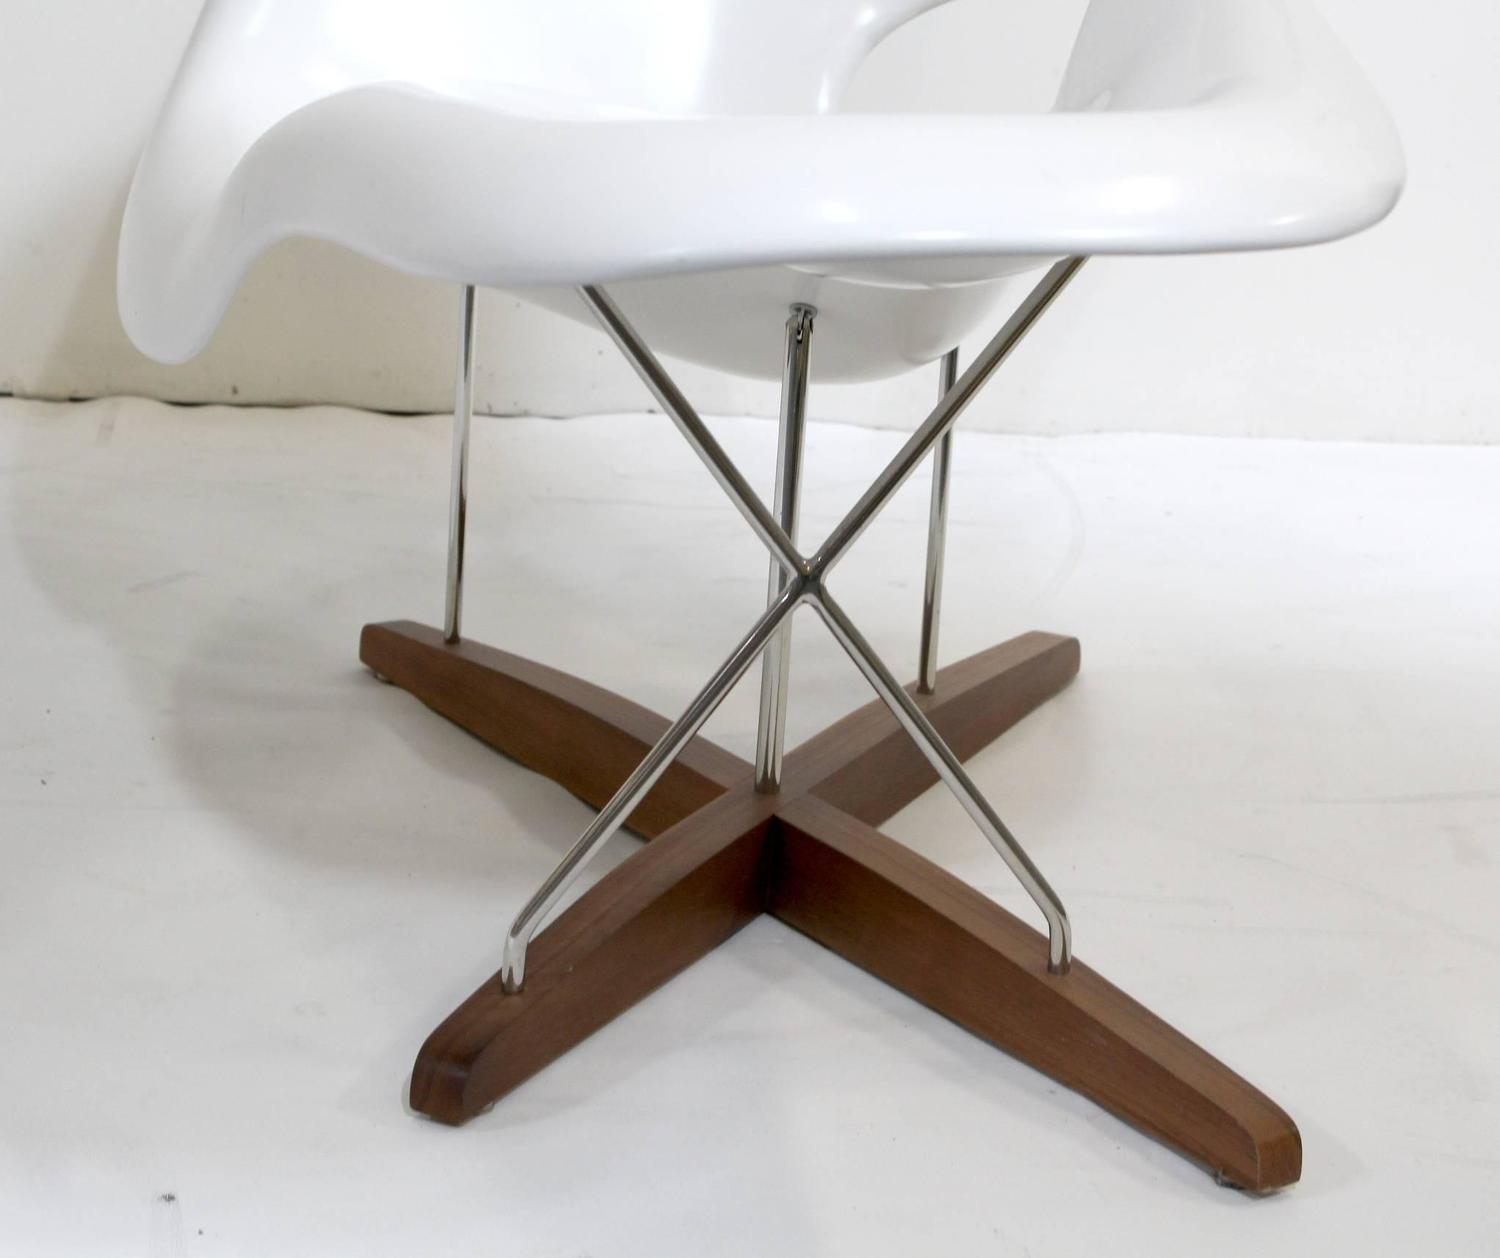 Eames vitra white la chaise chair at 1stdibs for Chaise eames